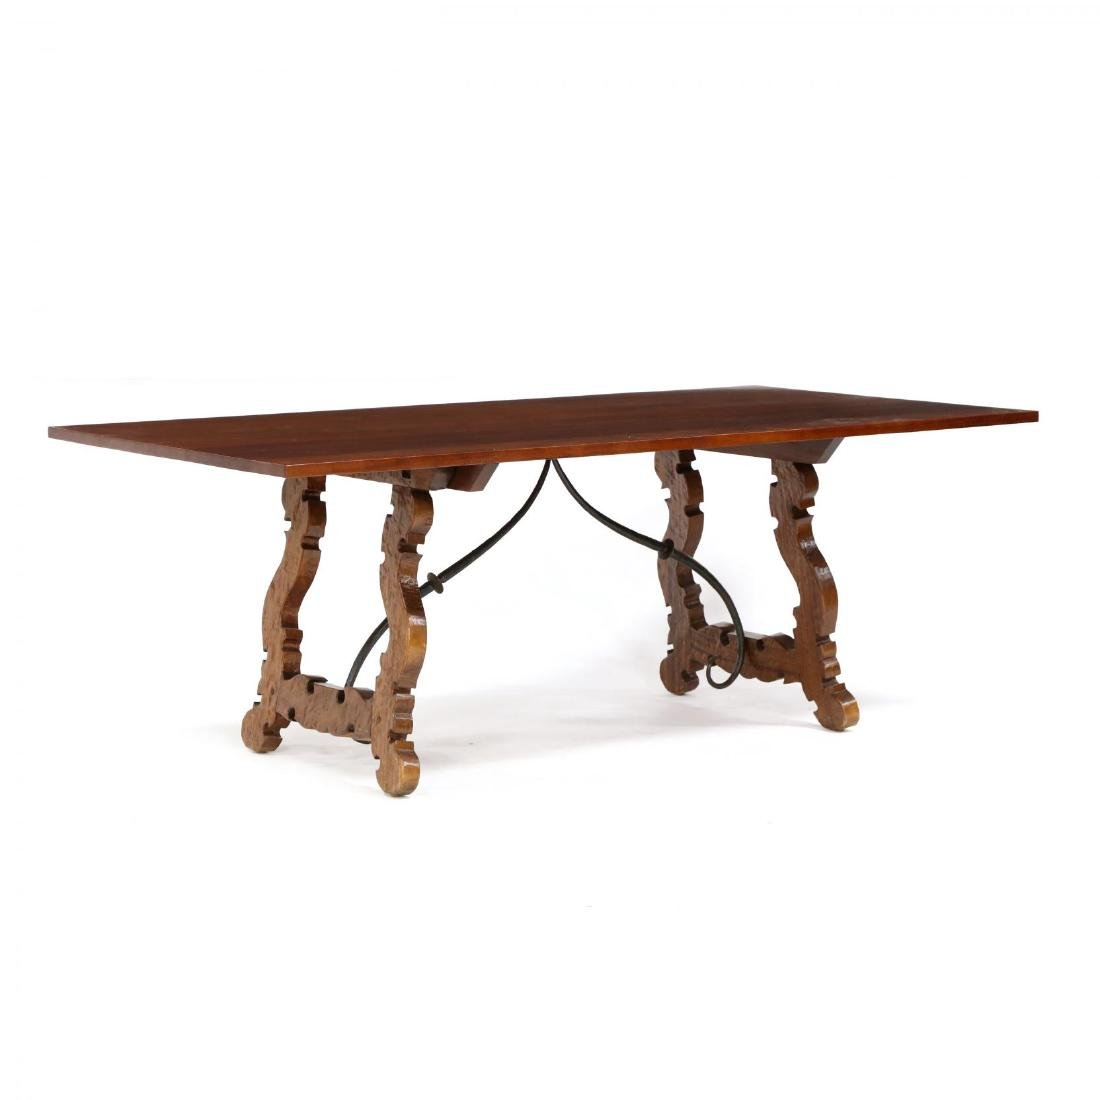 Spanish Style Carved Trestle Base Dining Table